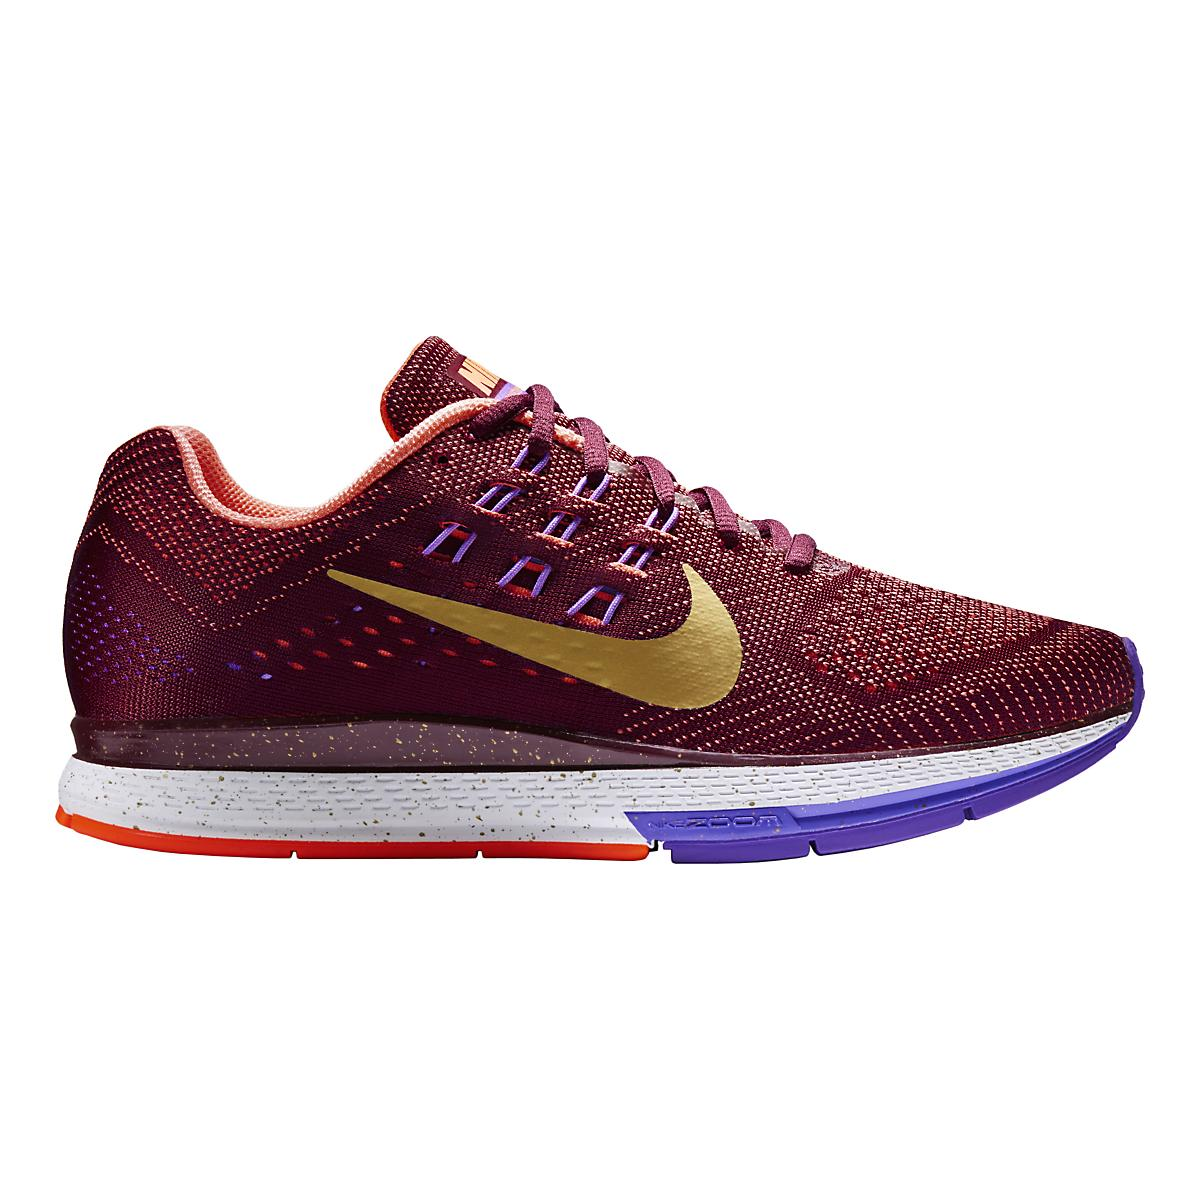 03565bd6dc17 Women s Nike Air Zoom Structure 18 QS Running Shoe at Road Runner Sports